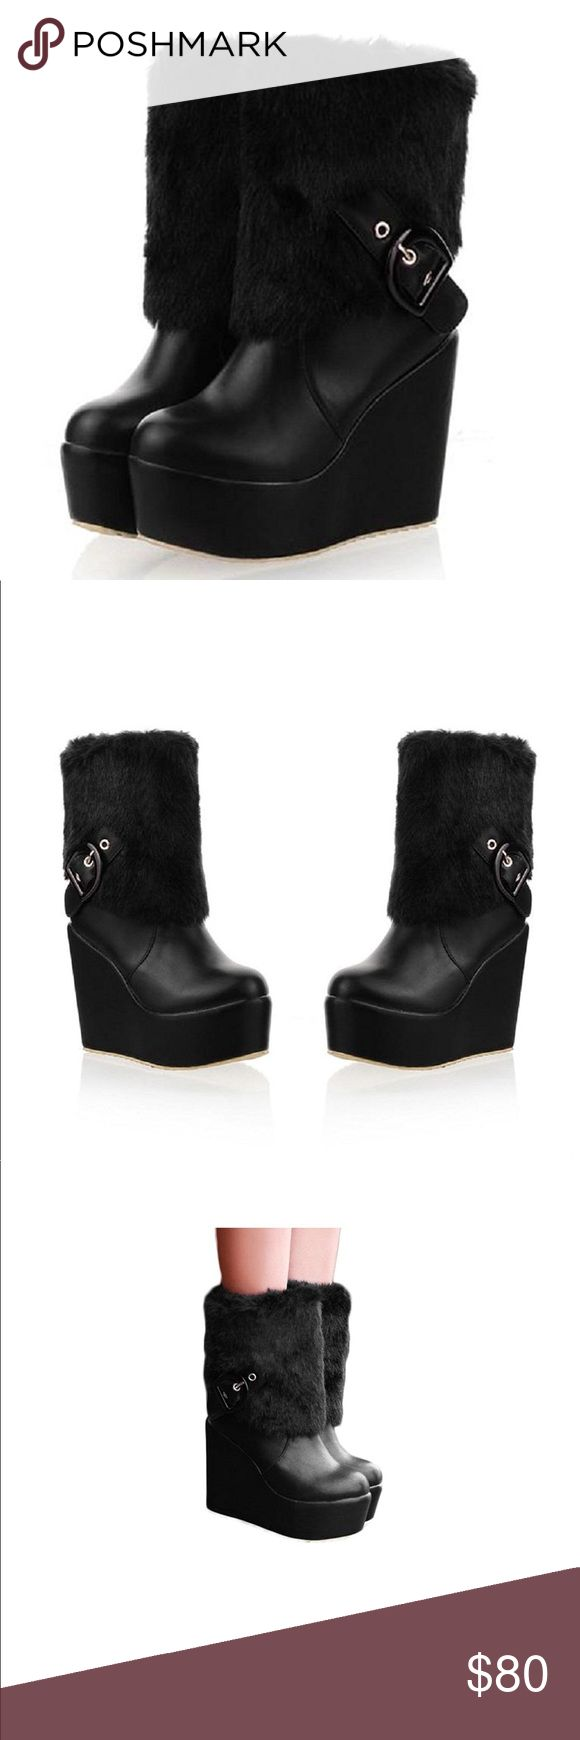 """Faux-fur Womens Platform Wedge Heel Snow Boots Brand new boots,never wear manmade sole Shaft measures approximately 5.9 from arch Platform measures approximately 1.50"""" Faux-Fur+PU Leather Manmade Material Heel Height:4.3"""" Boot Circuit:11"""" Lining material:velvet lining Shoes"""